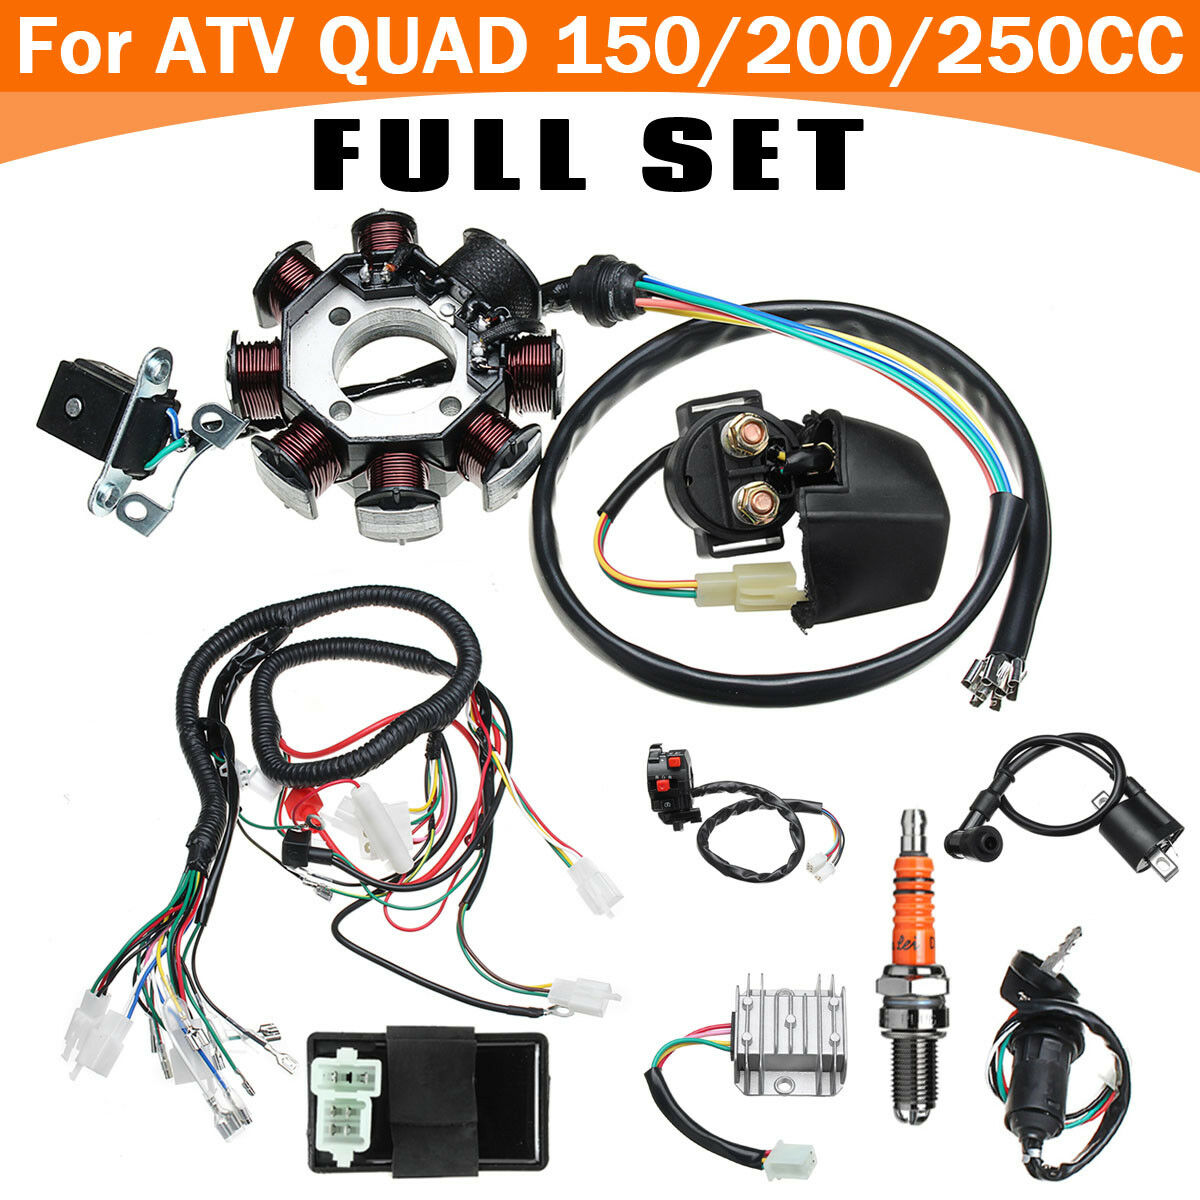 Full Electric Cdi Coil Wire Wiring Harness Stator Loom For Atv Quad 1 Of 10only 5 Available